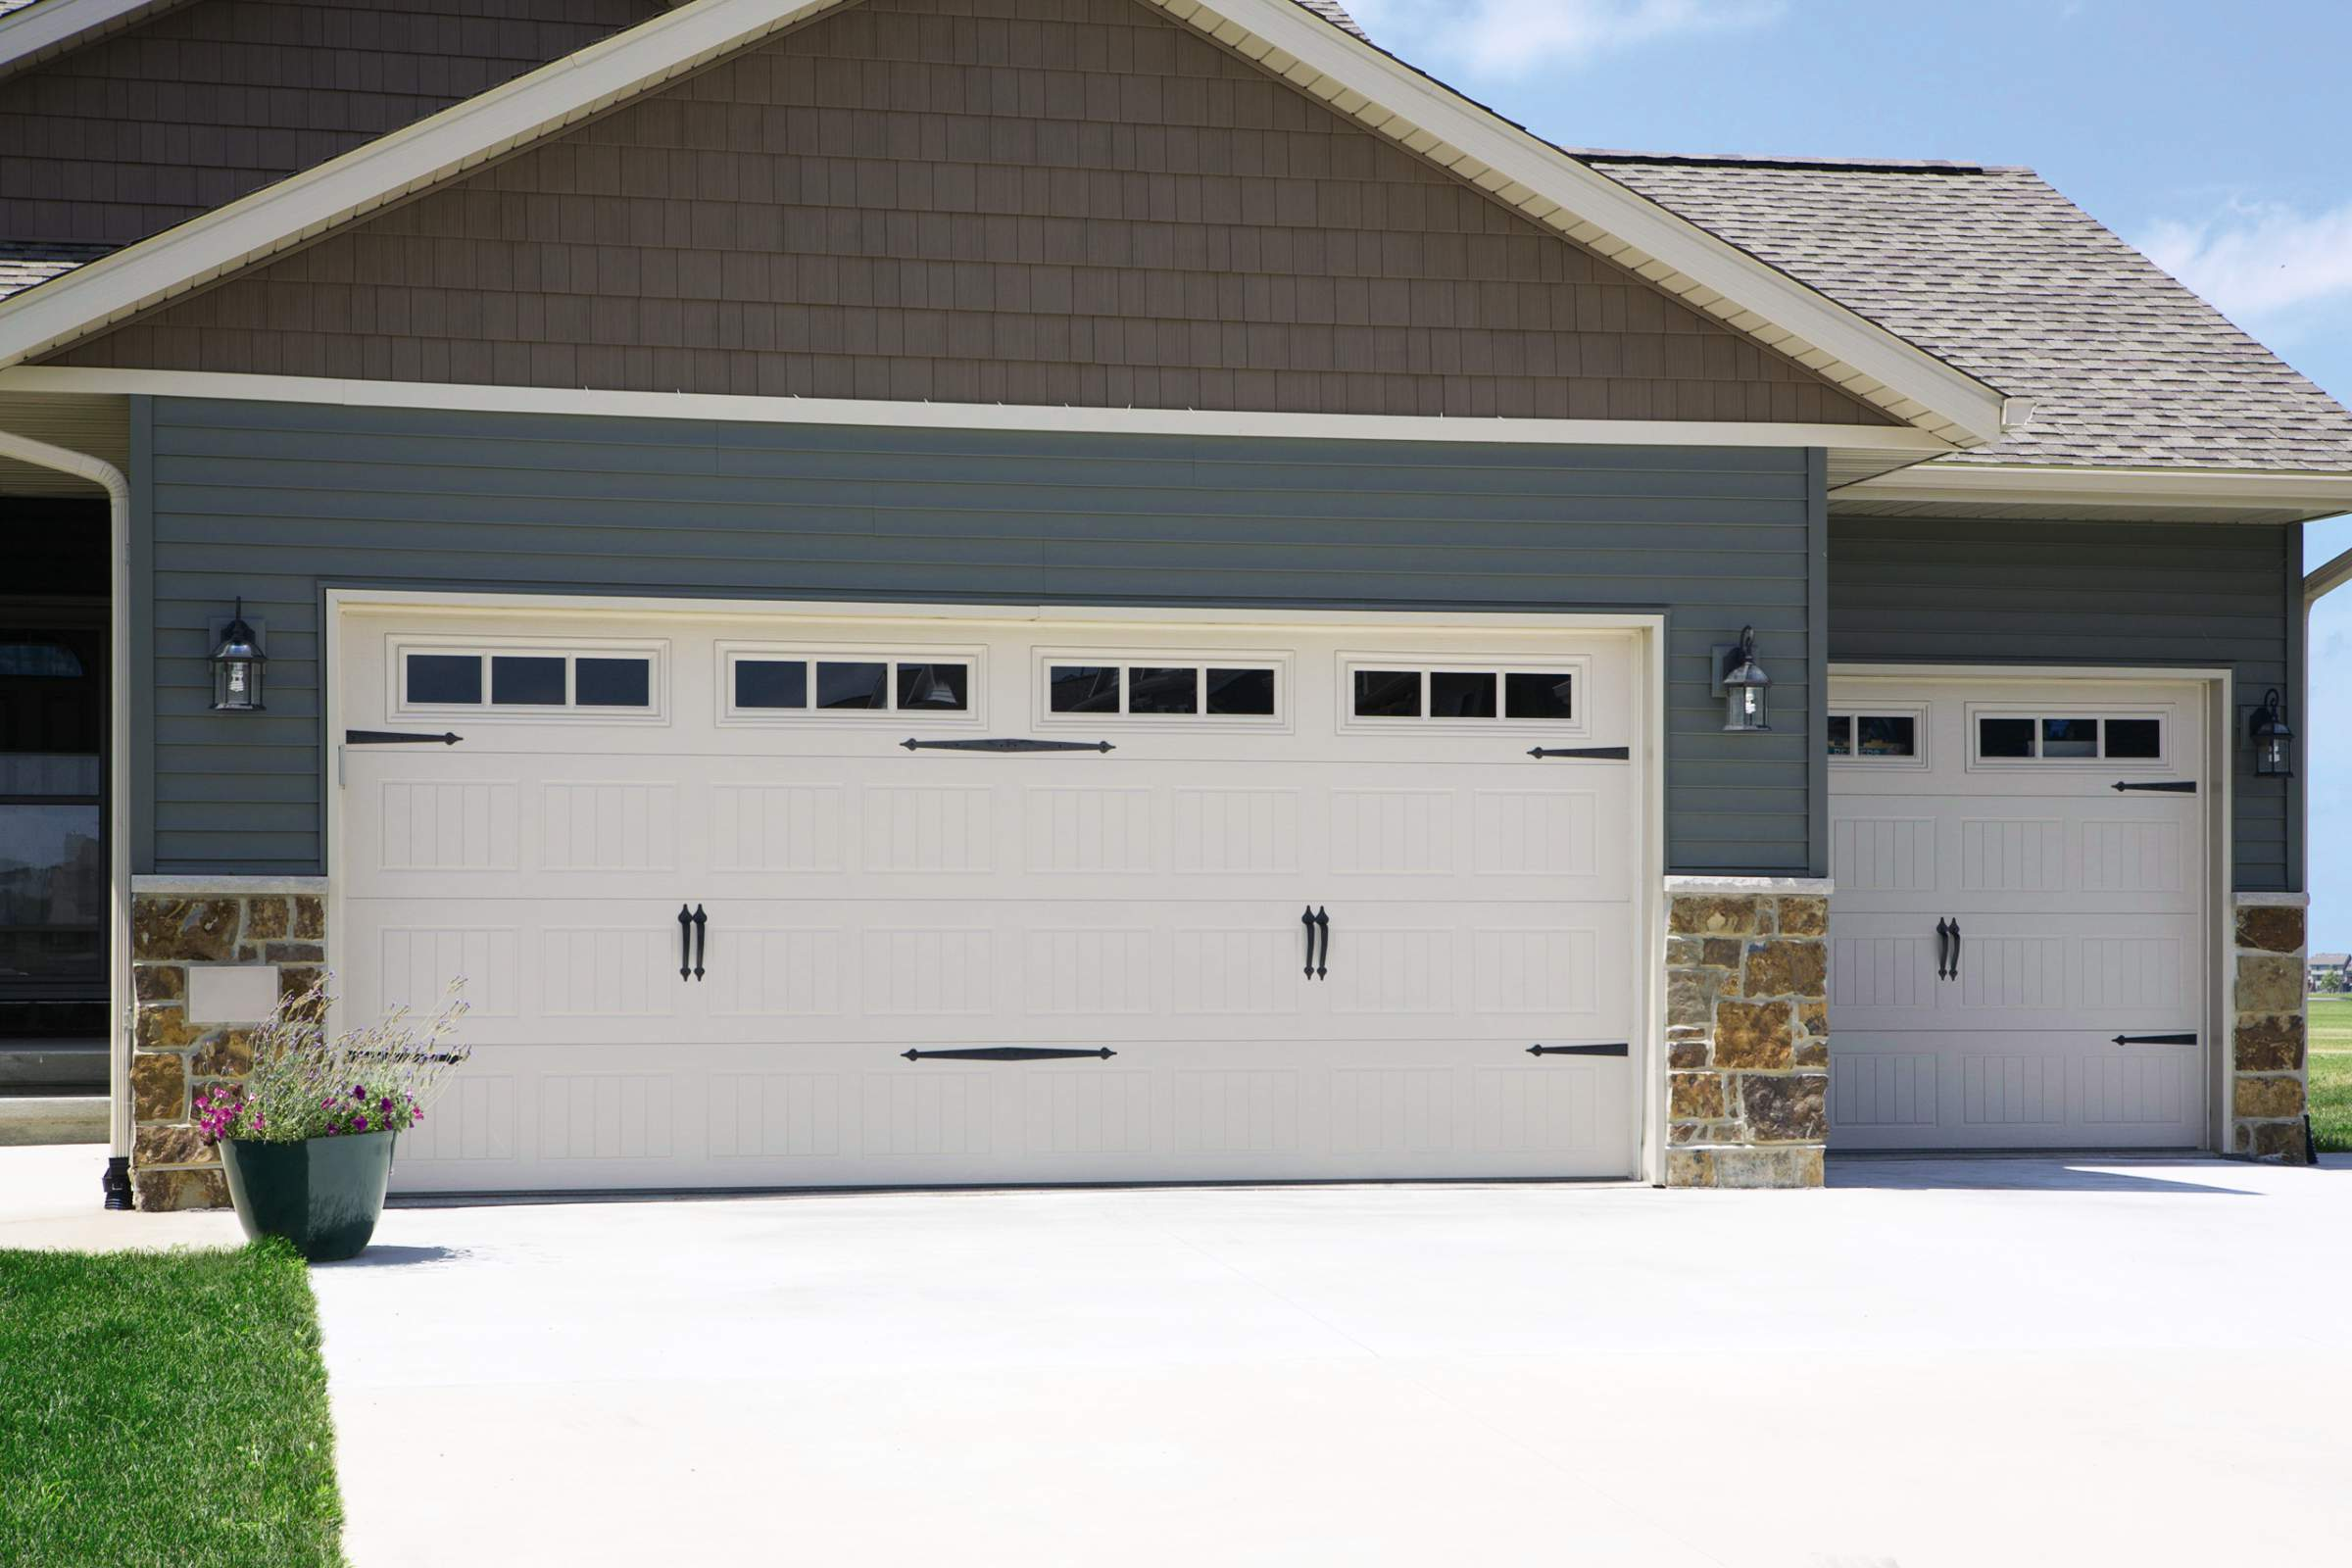 Traditional Steel Garage Doors Overhead Door Company Of